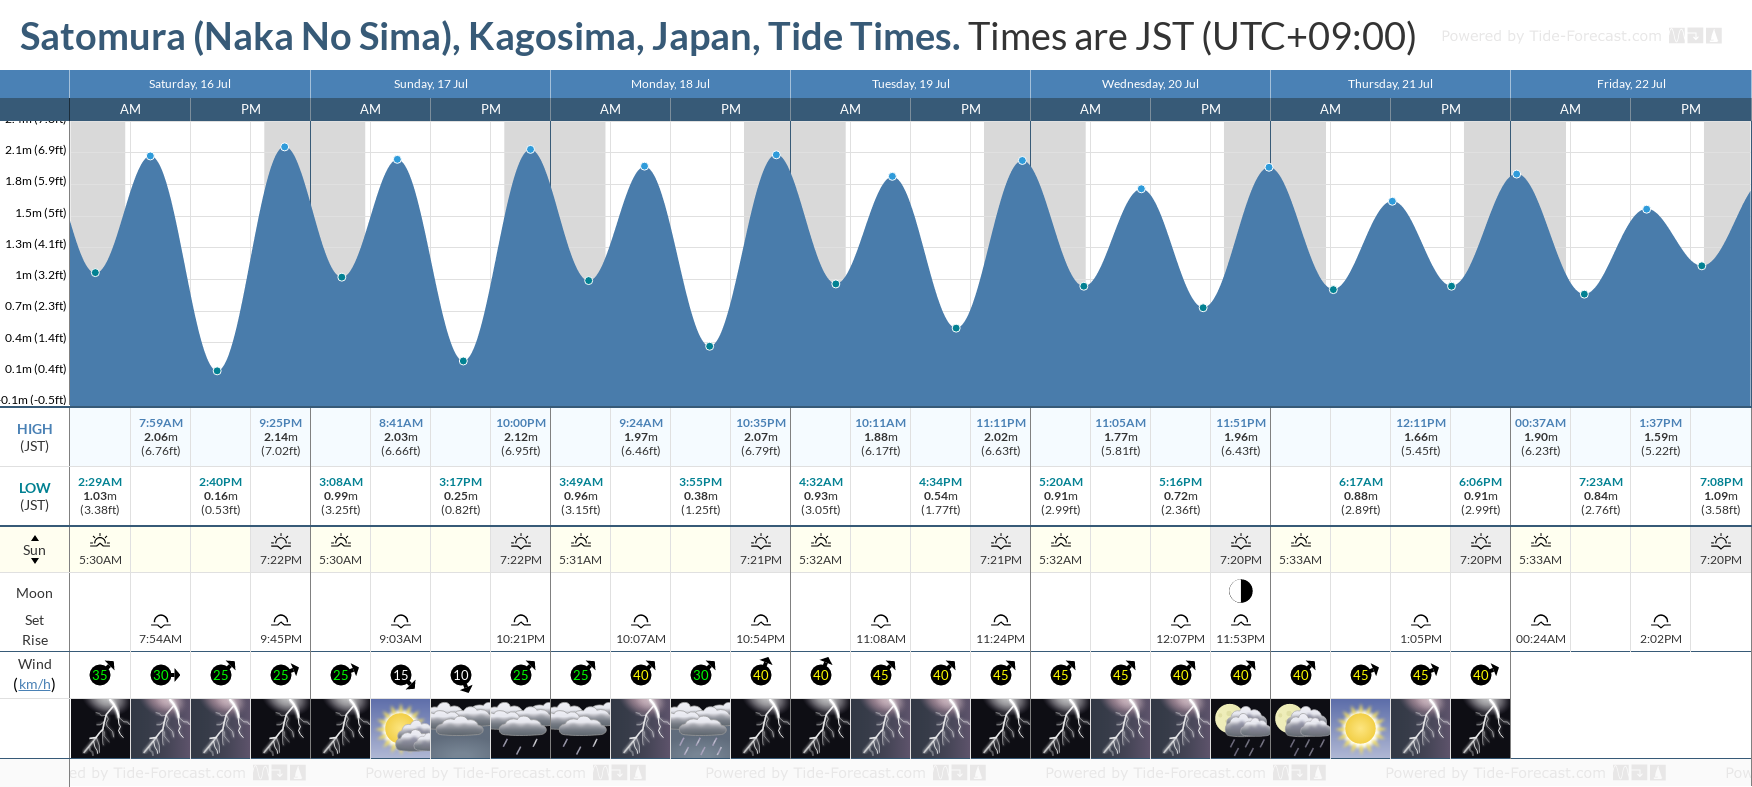 Satomura (Naka No Sima), Kagosima, Japan Tide Chart including high and low tide tide times for the next 7 days